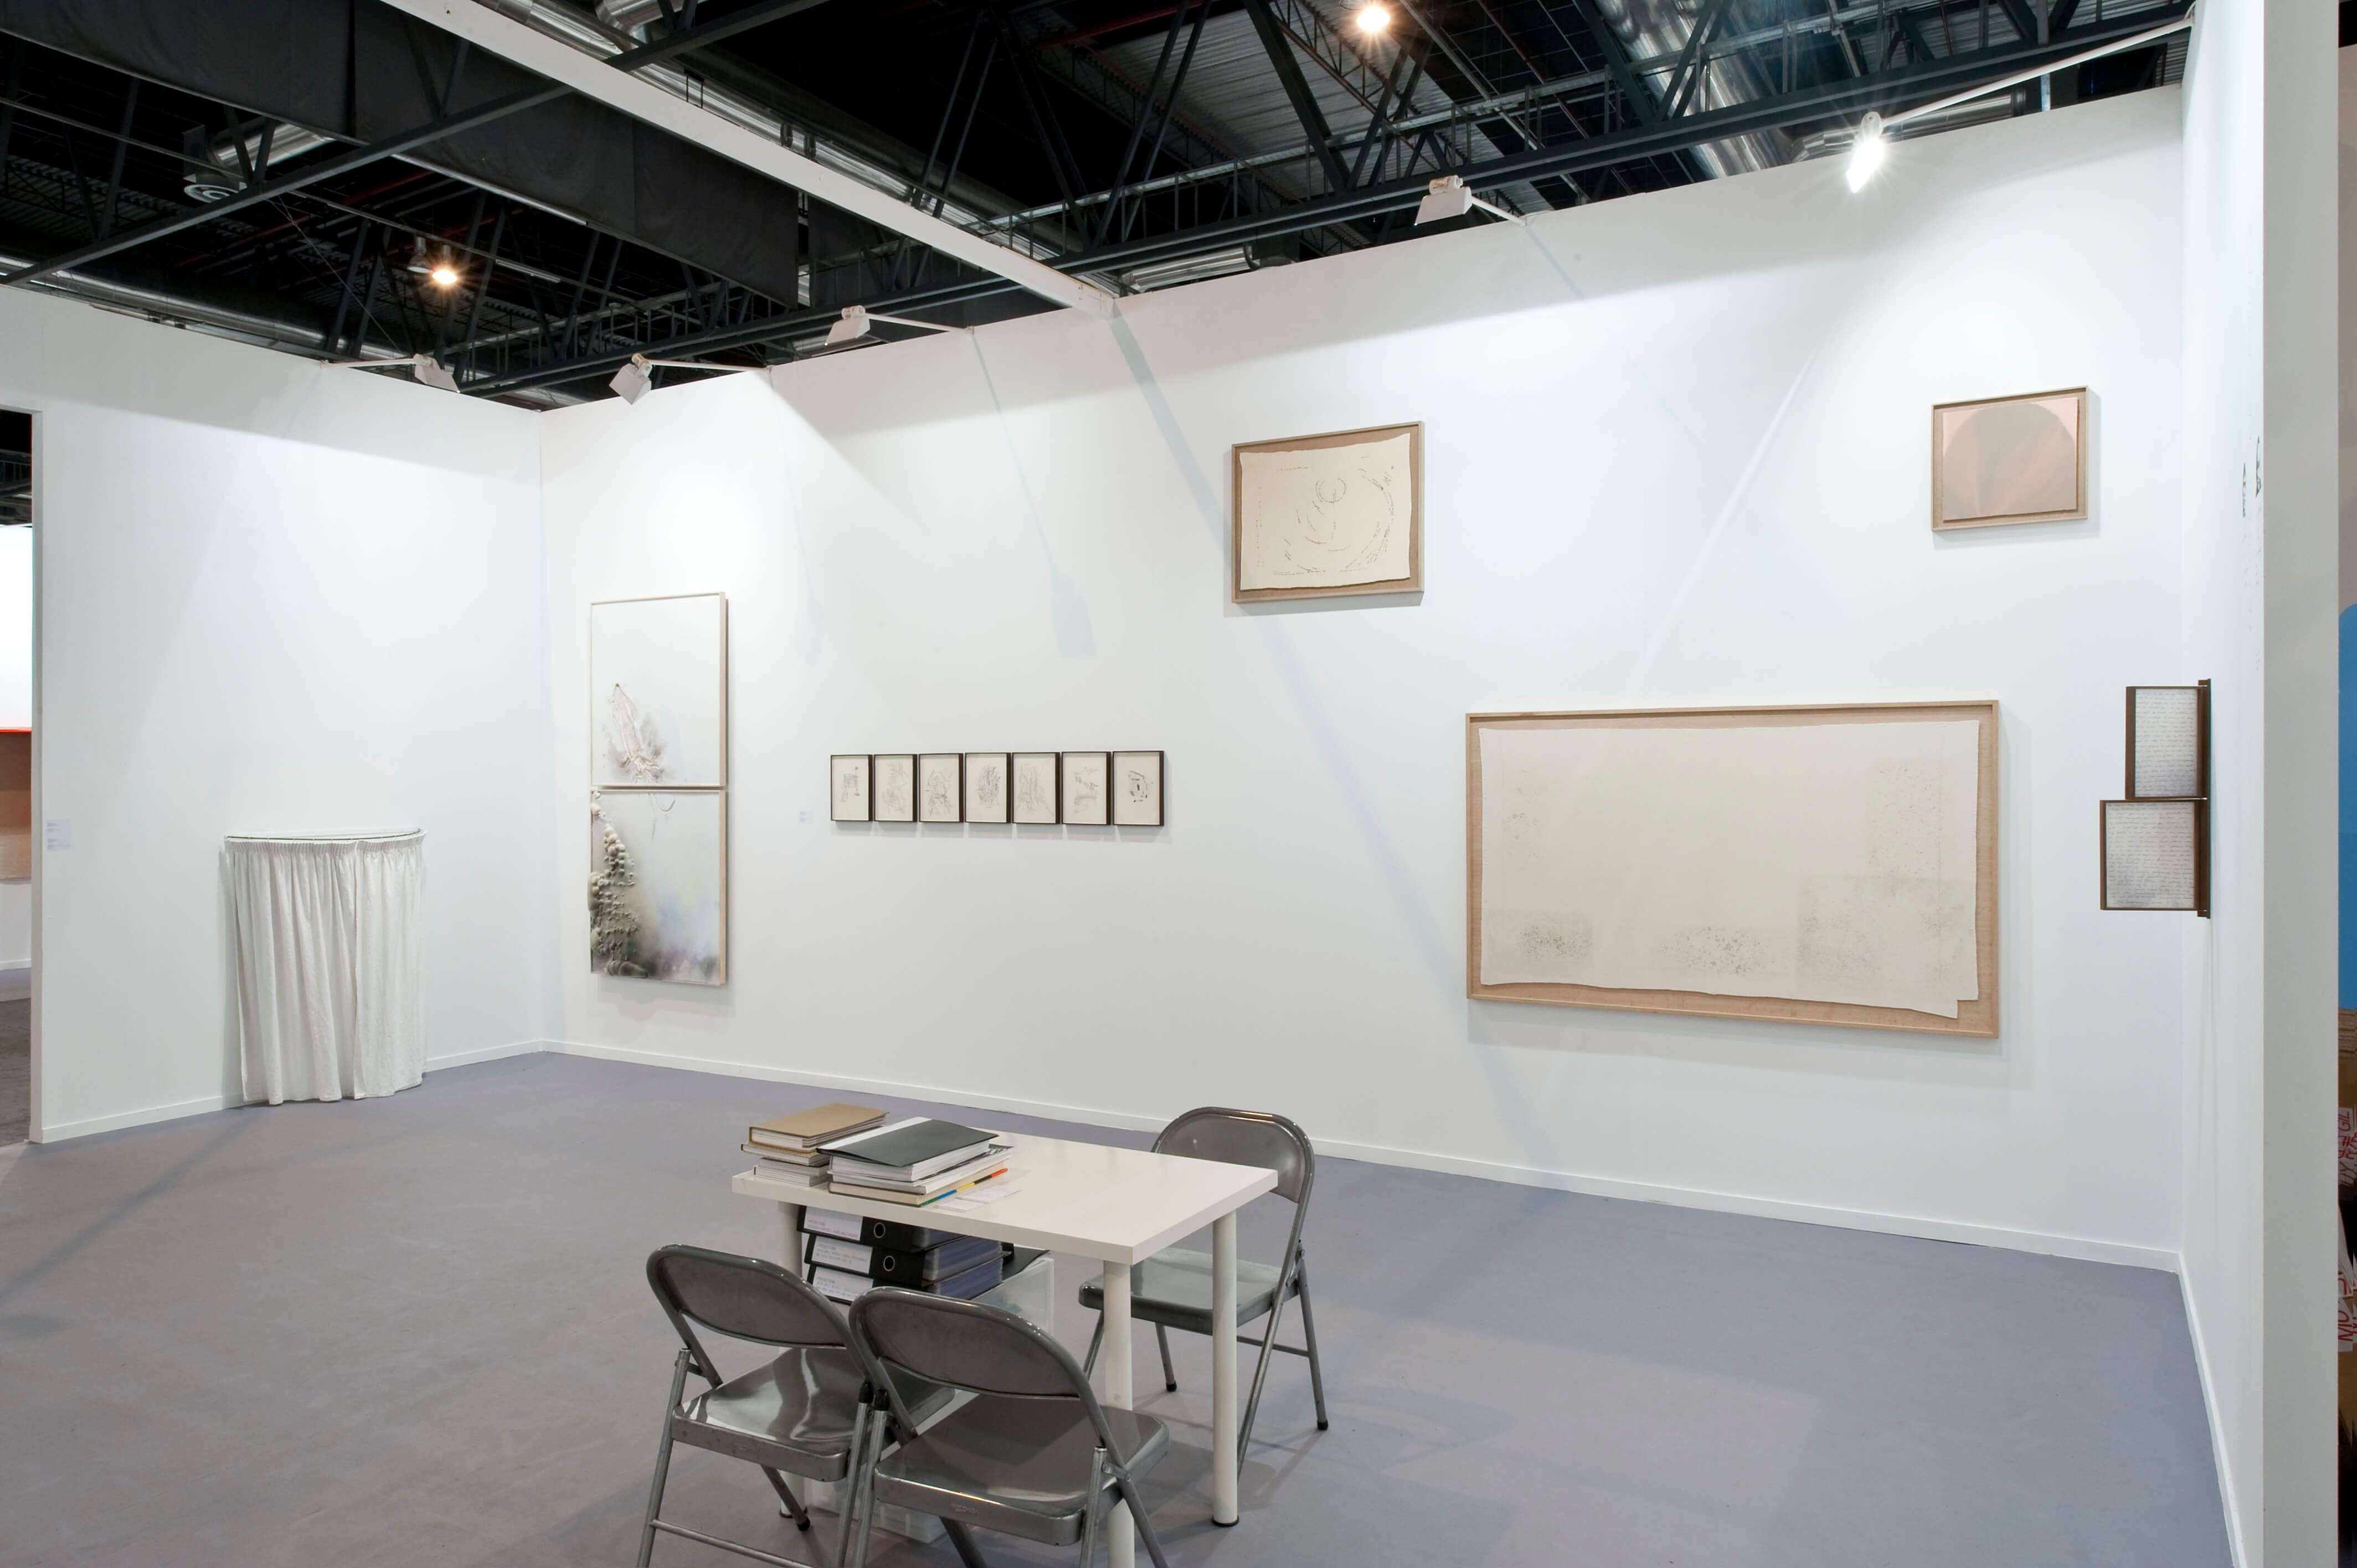 Installation view: ProjecteSD, Booth 9D11 | ARCO 2015 | ProjecteSD